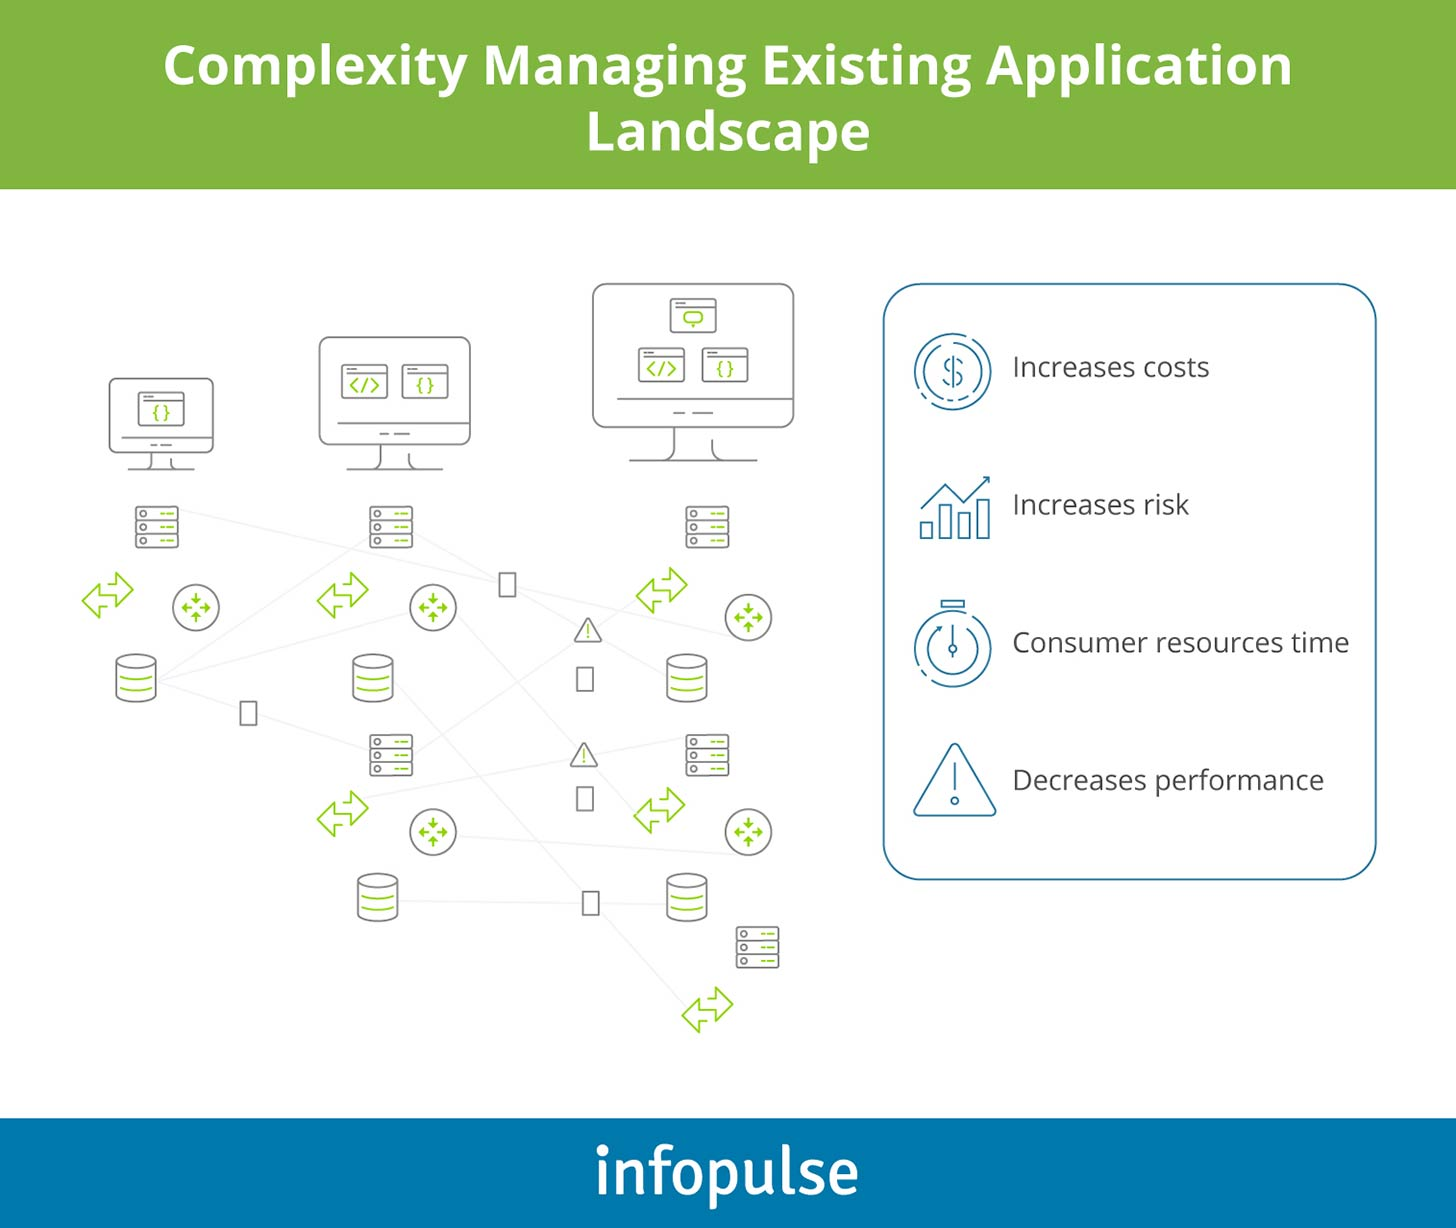 Complexity Managing Existing Application Landscape - Infopulse - 1